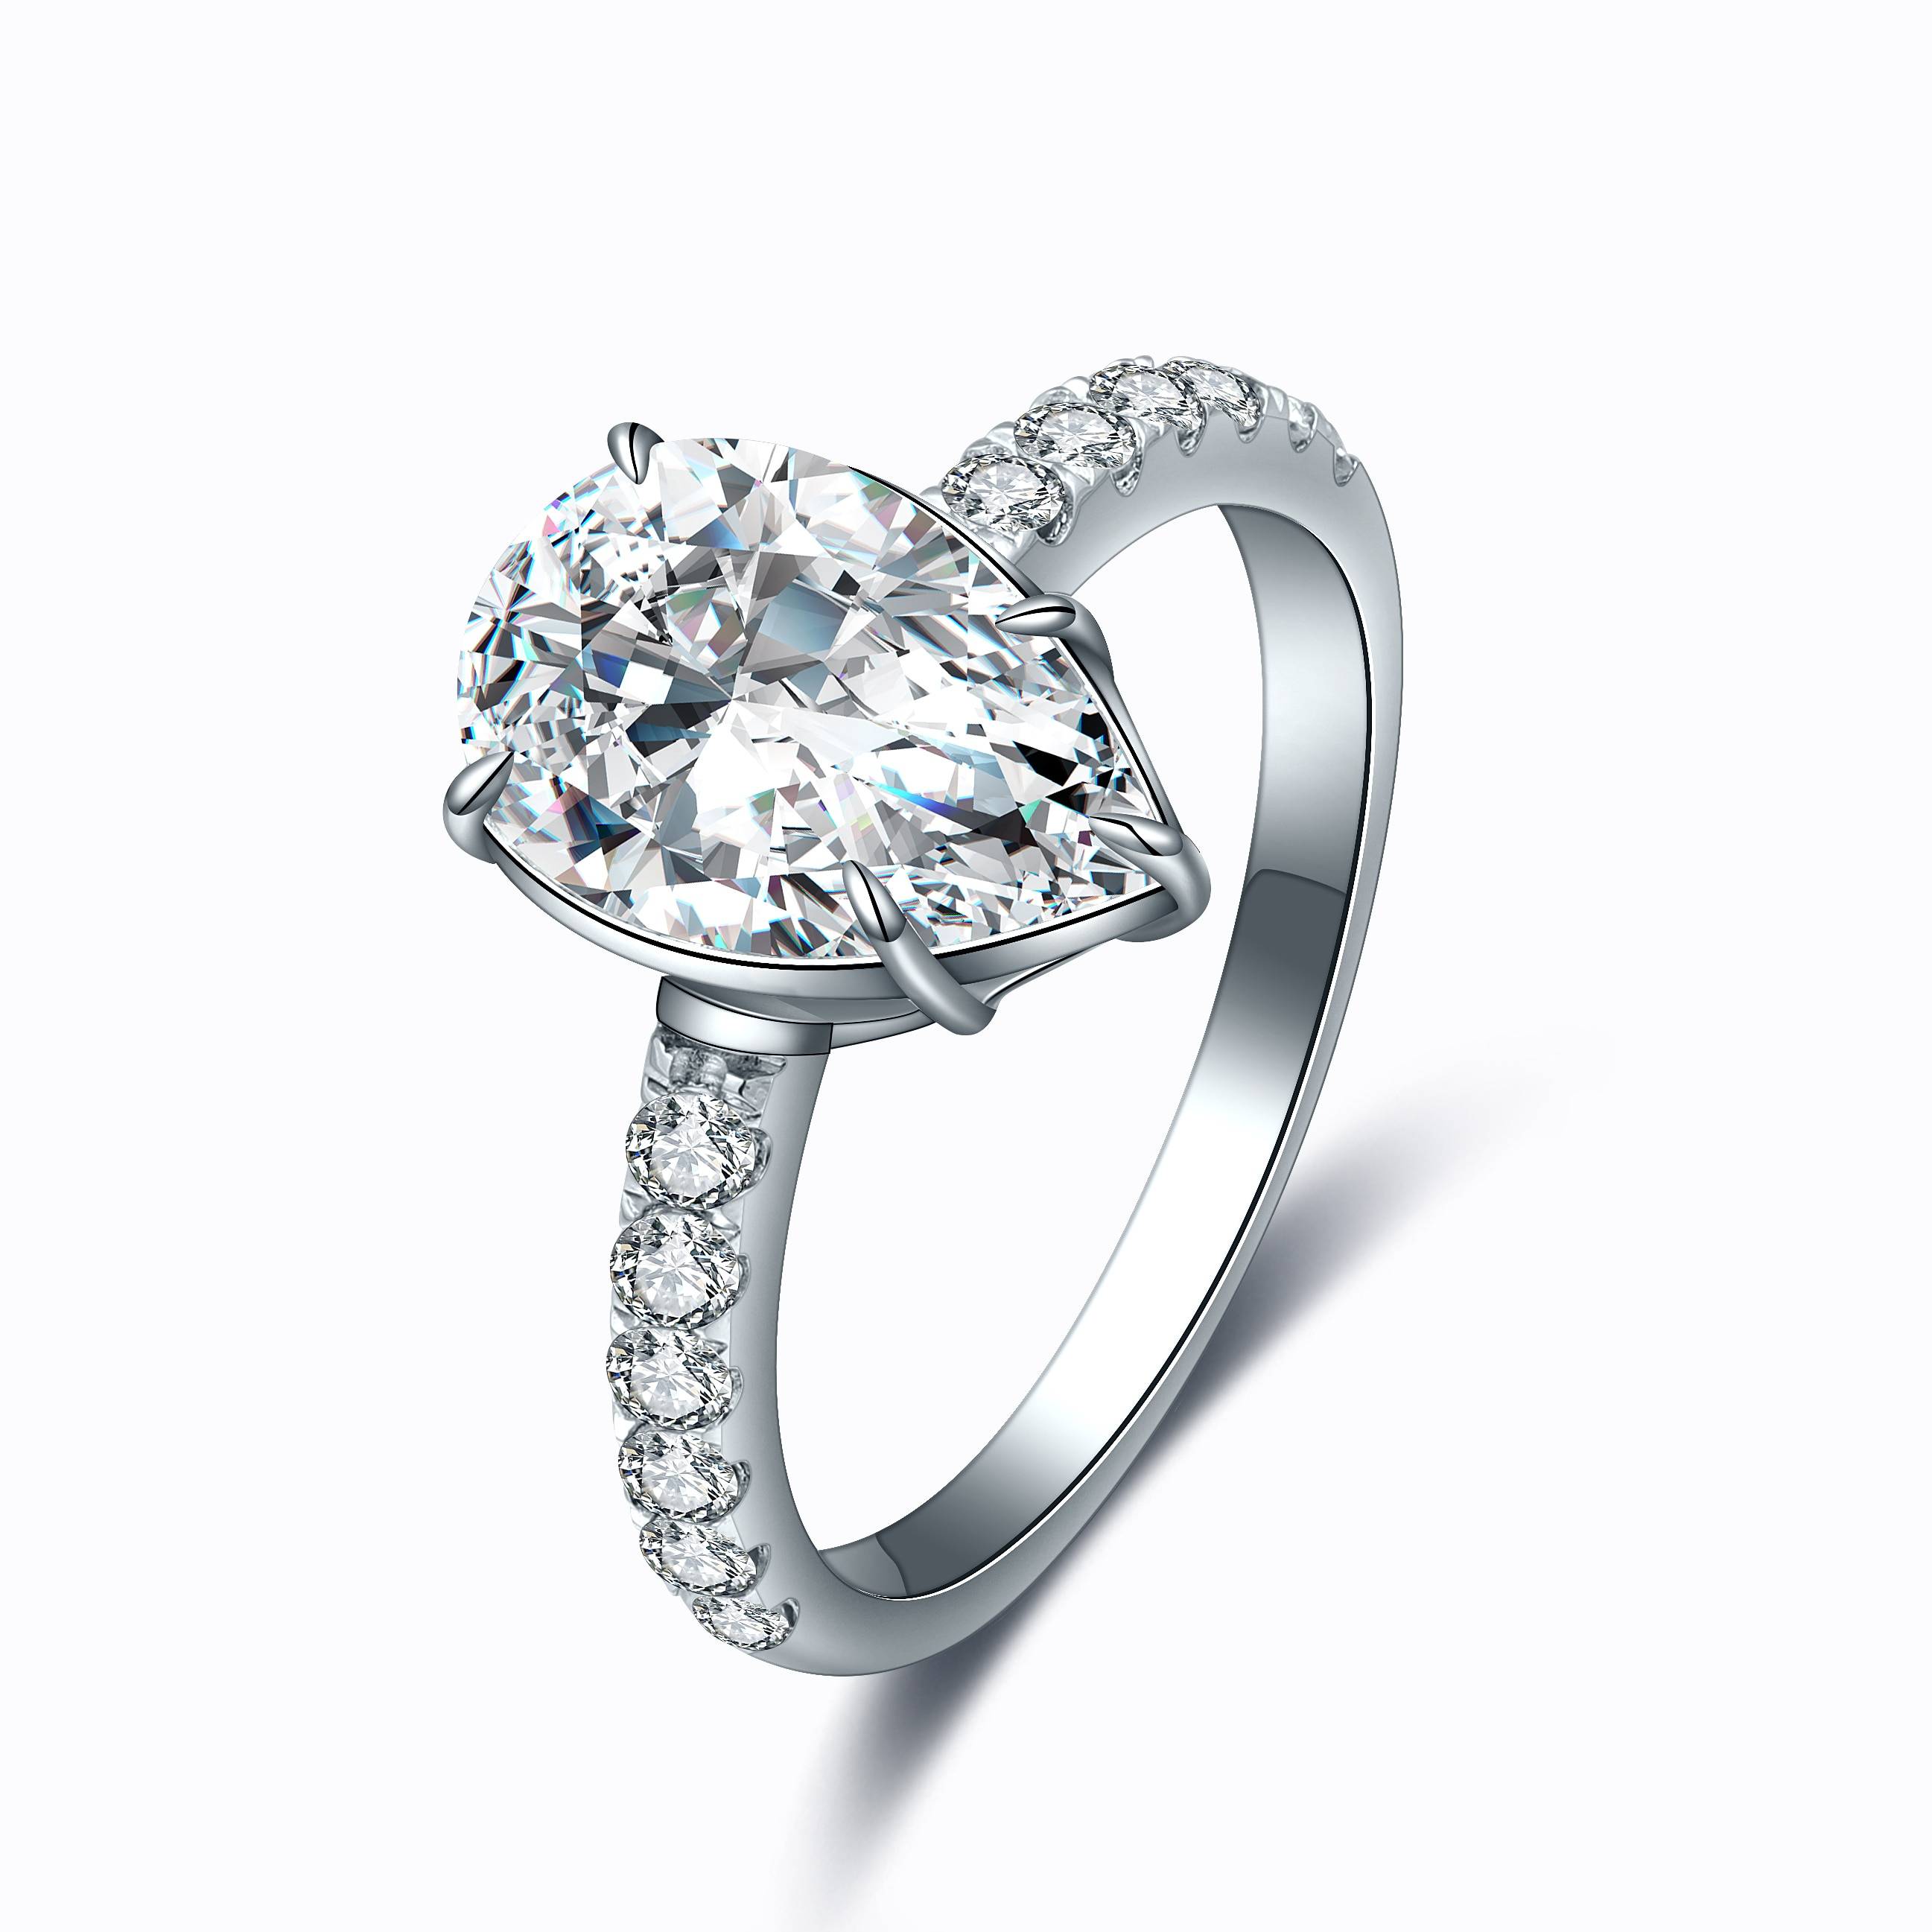 Zhanhao 2.0ct 925 Sterling Silver Simulated Diamond Pear Shape Ring For Men Ladies Sparkling Fashion Bridal Rings